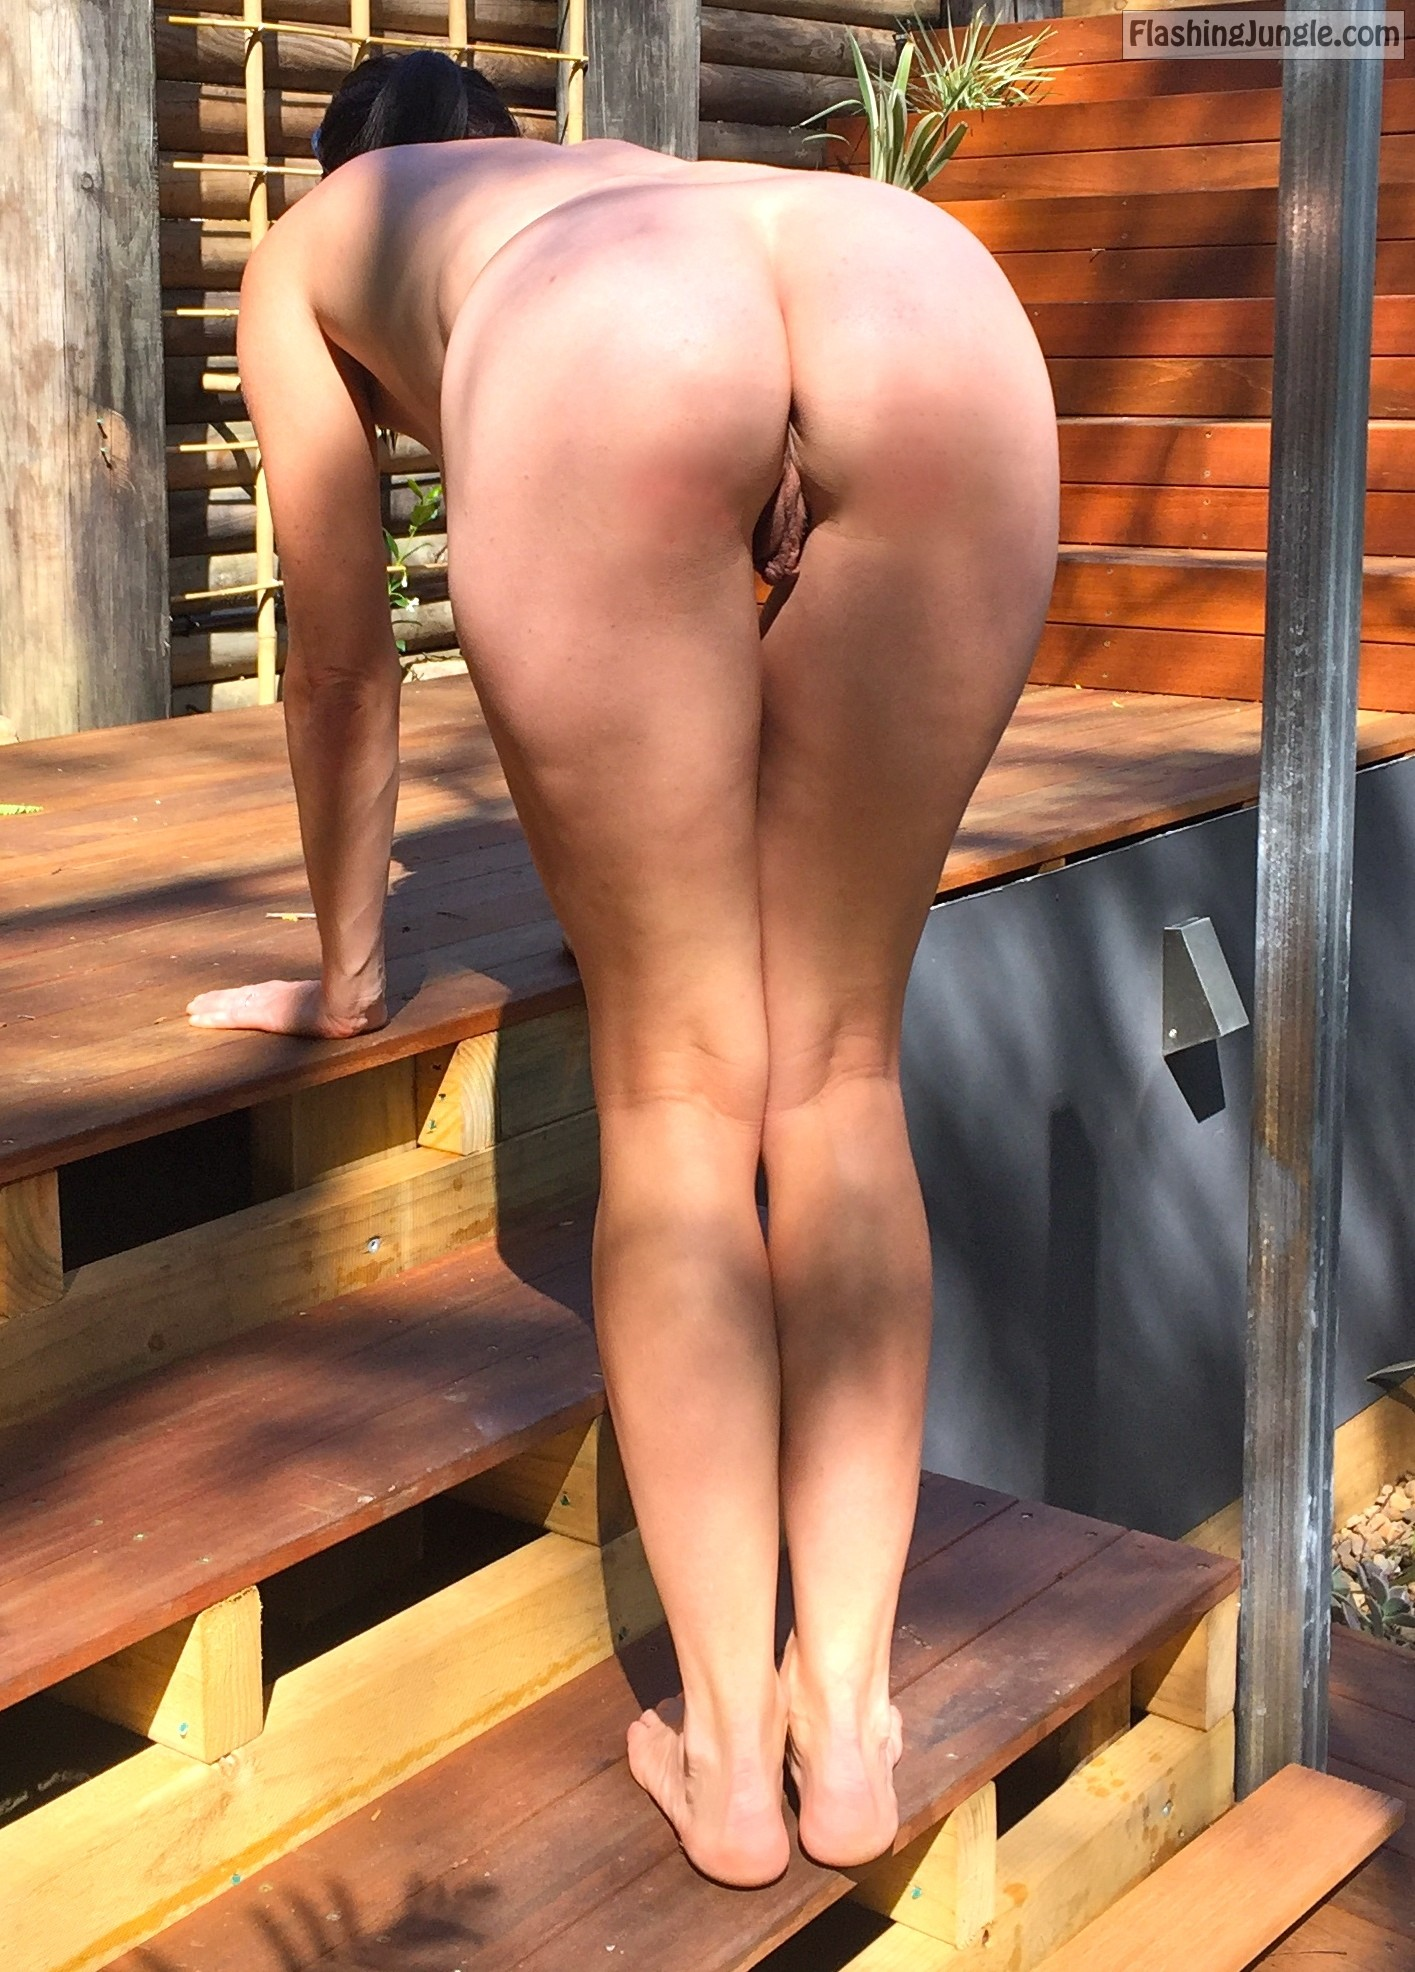 Real Nudity Public Nudity Pics MILF Flashing Pics Ass Flash Pics